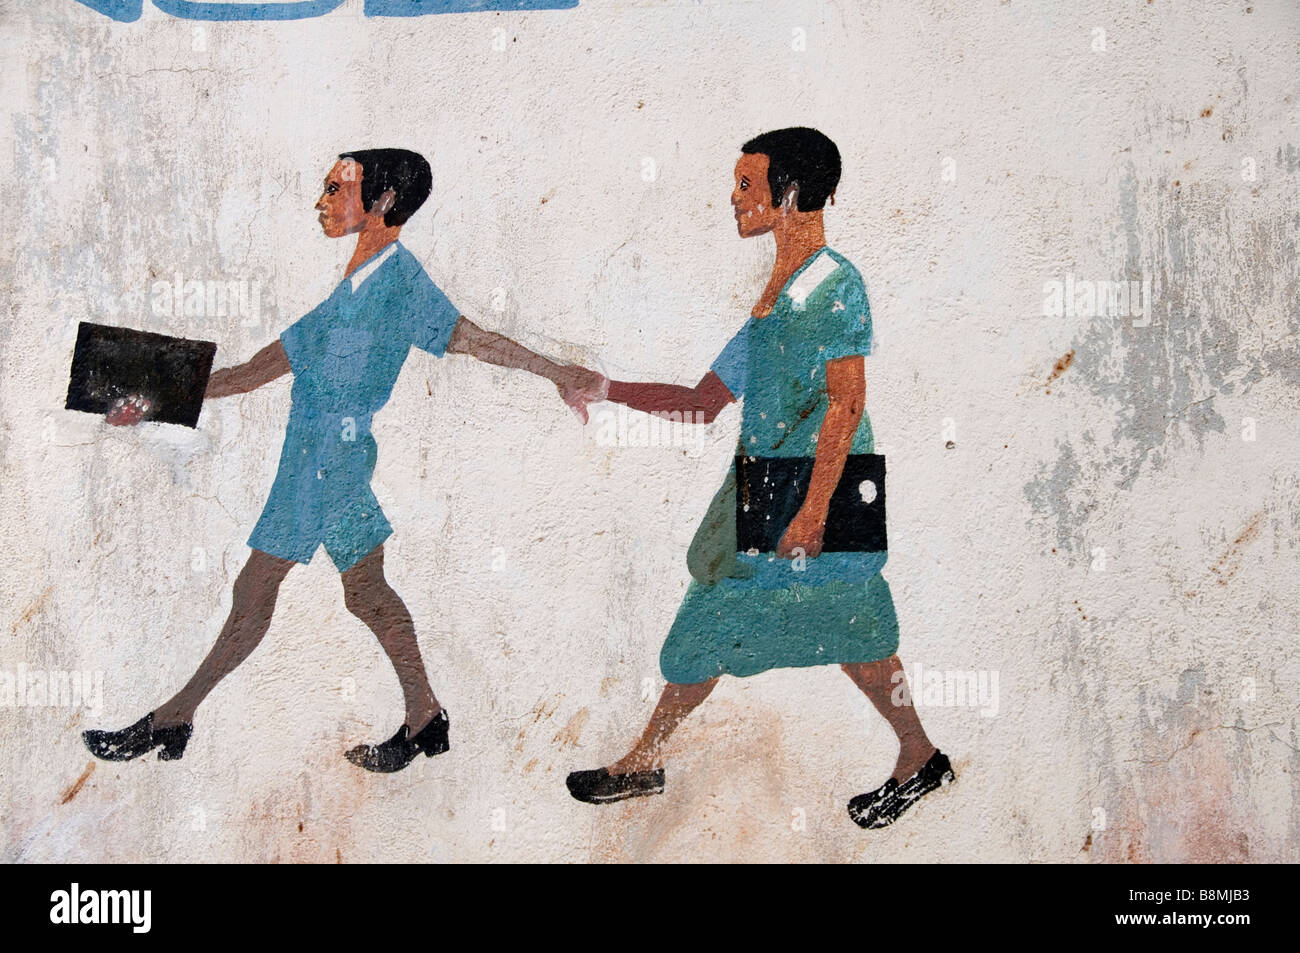 Malawi 2008 Education Wall Painting Of Girl And Boy Walking To